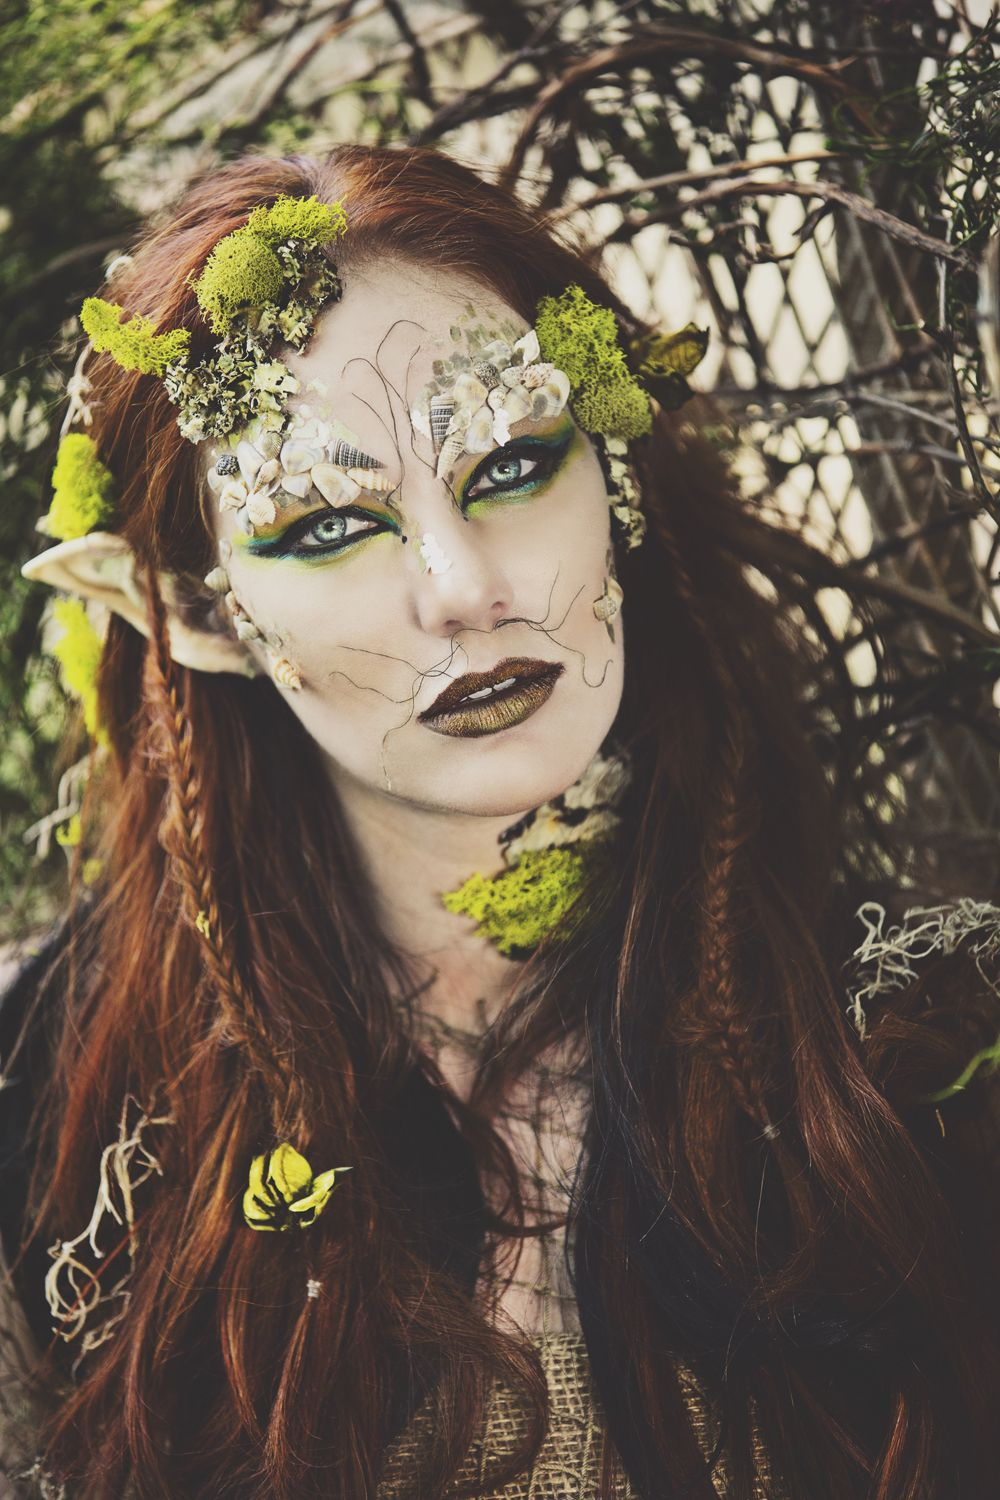 Swamp Siren/Woodland Nymph Halloween Special Effects